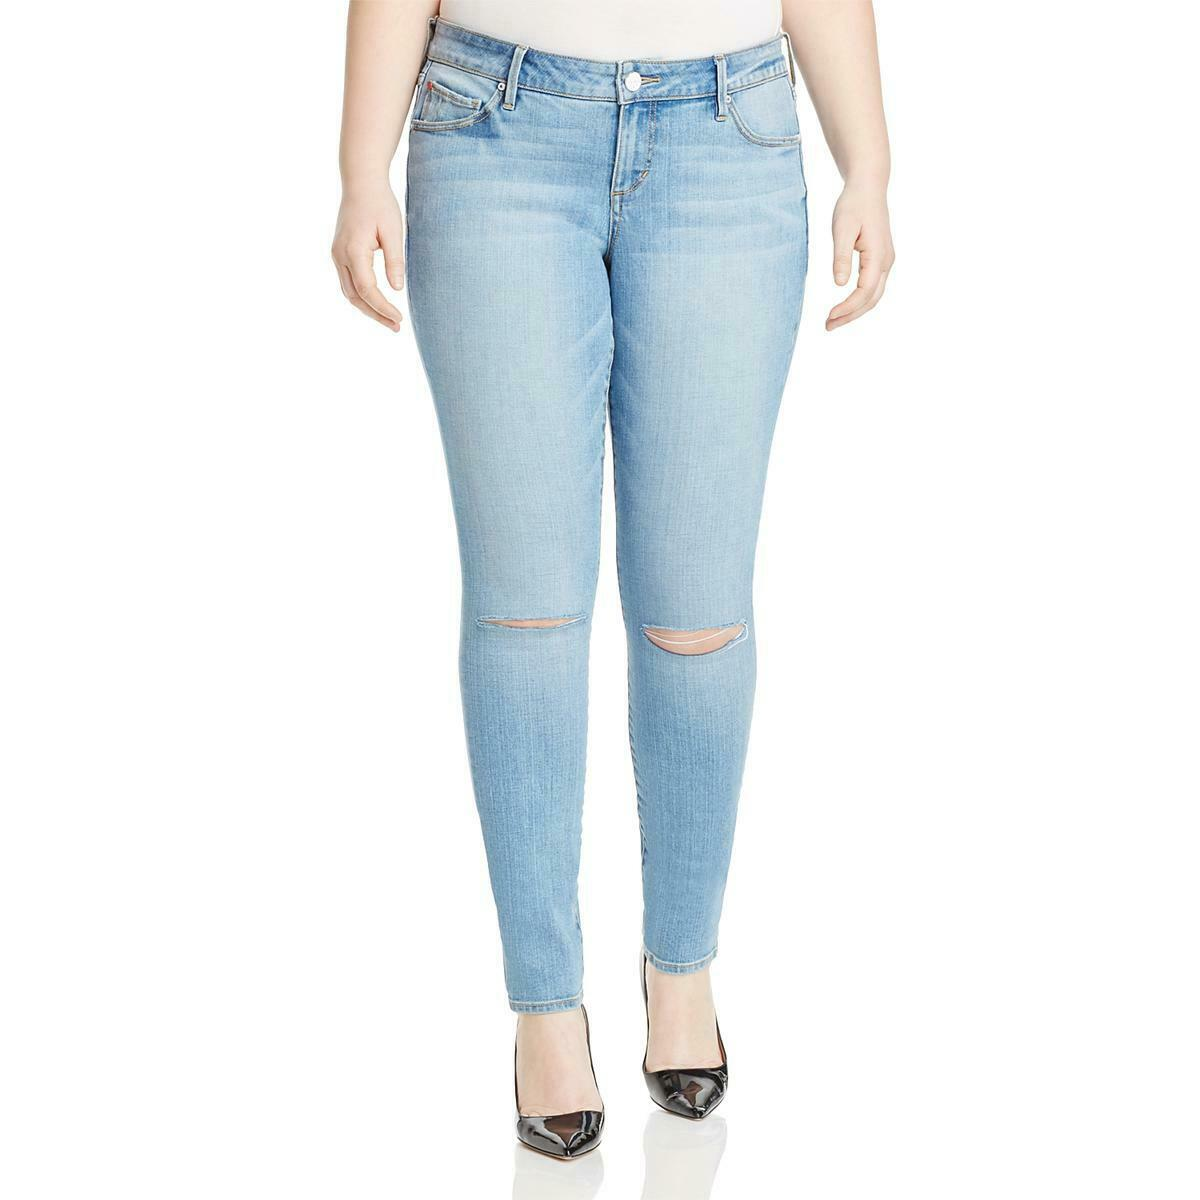 Slink Jeans Womens Anita bluee Distressed Skinny Jeans Plus 22 BHFO 1293